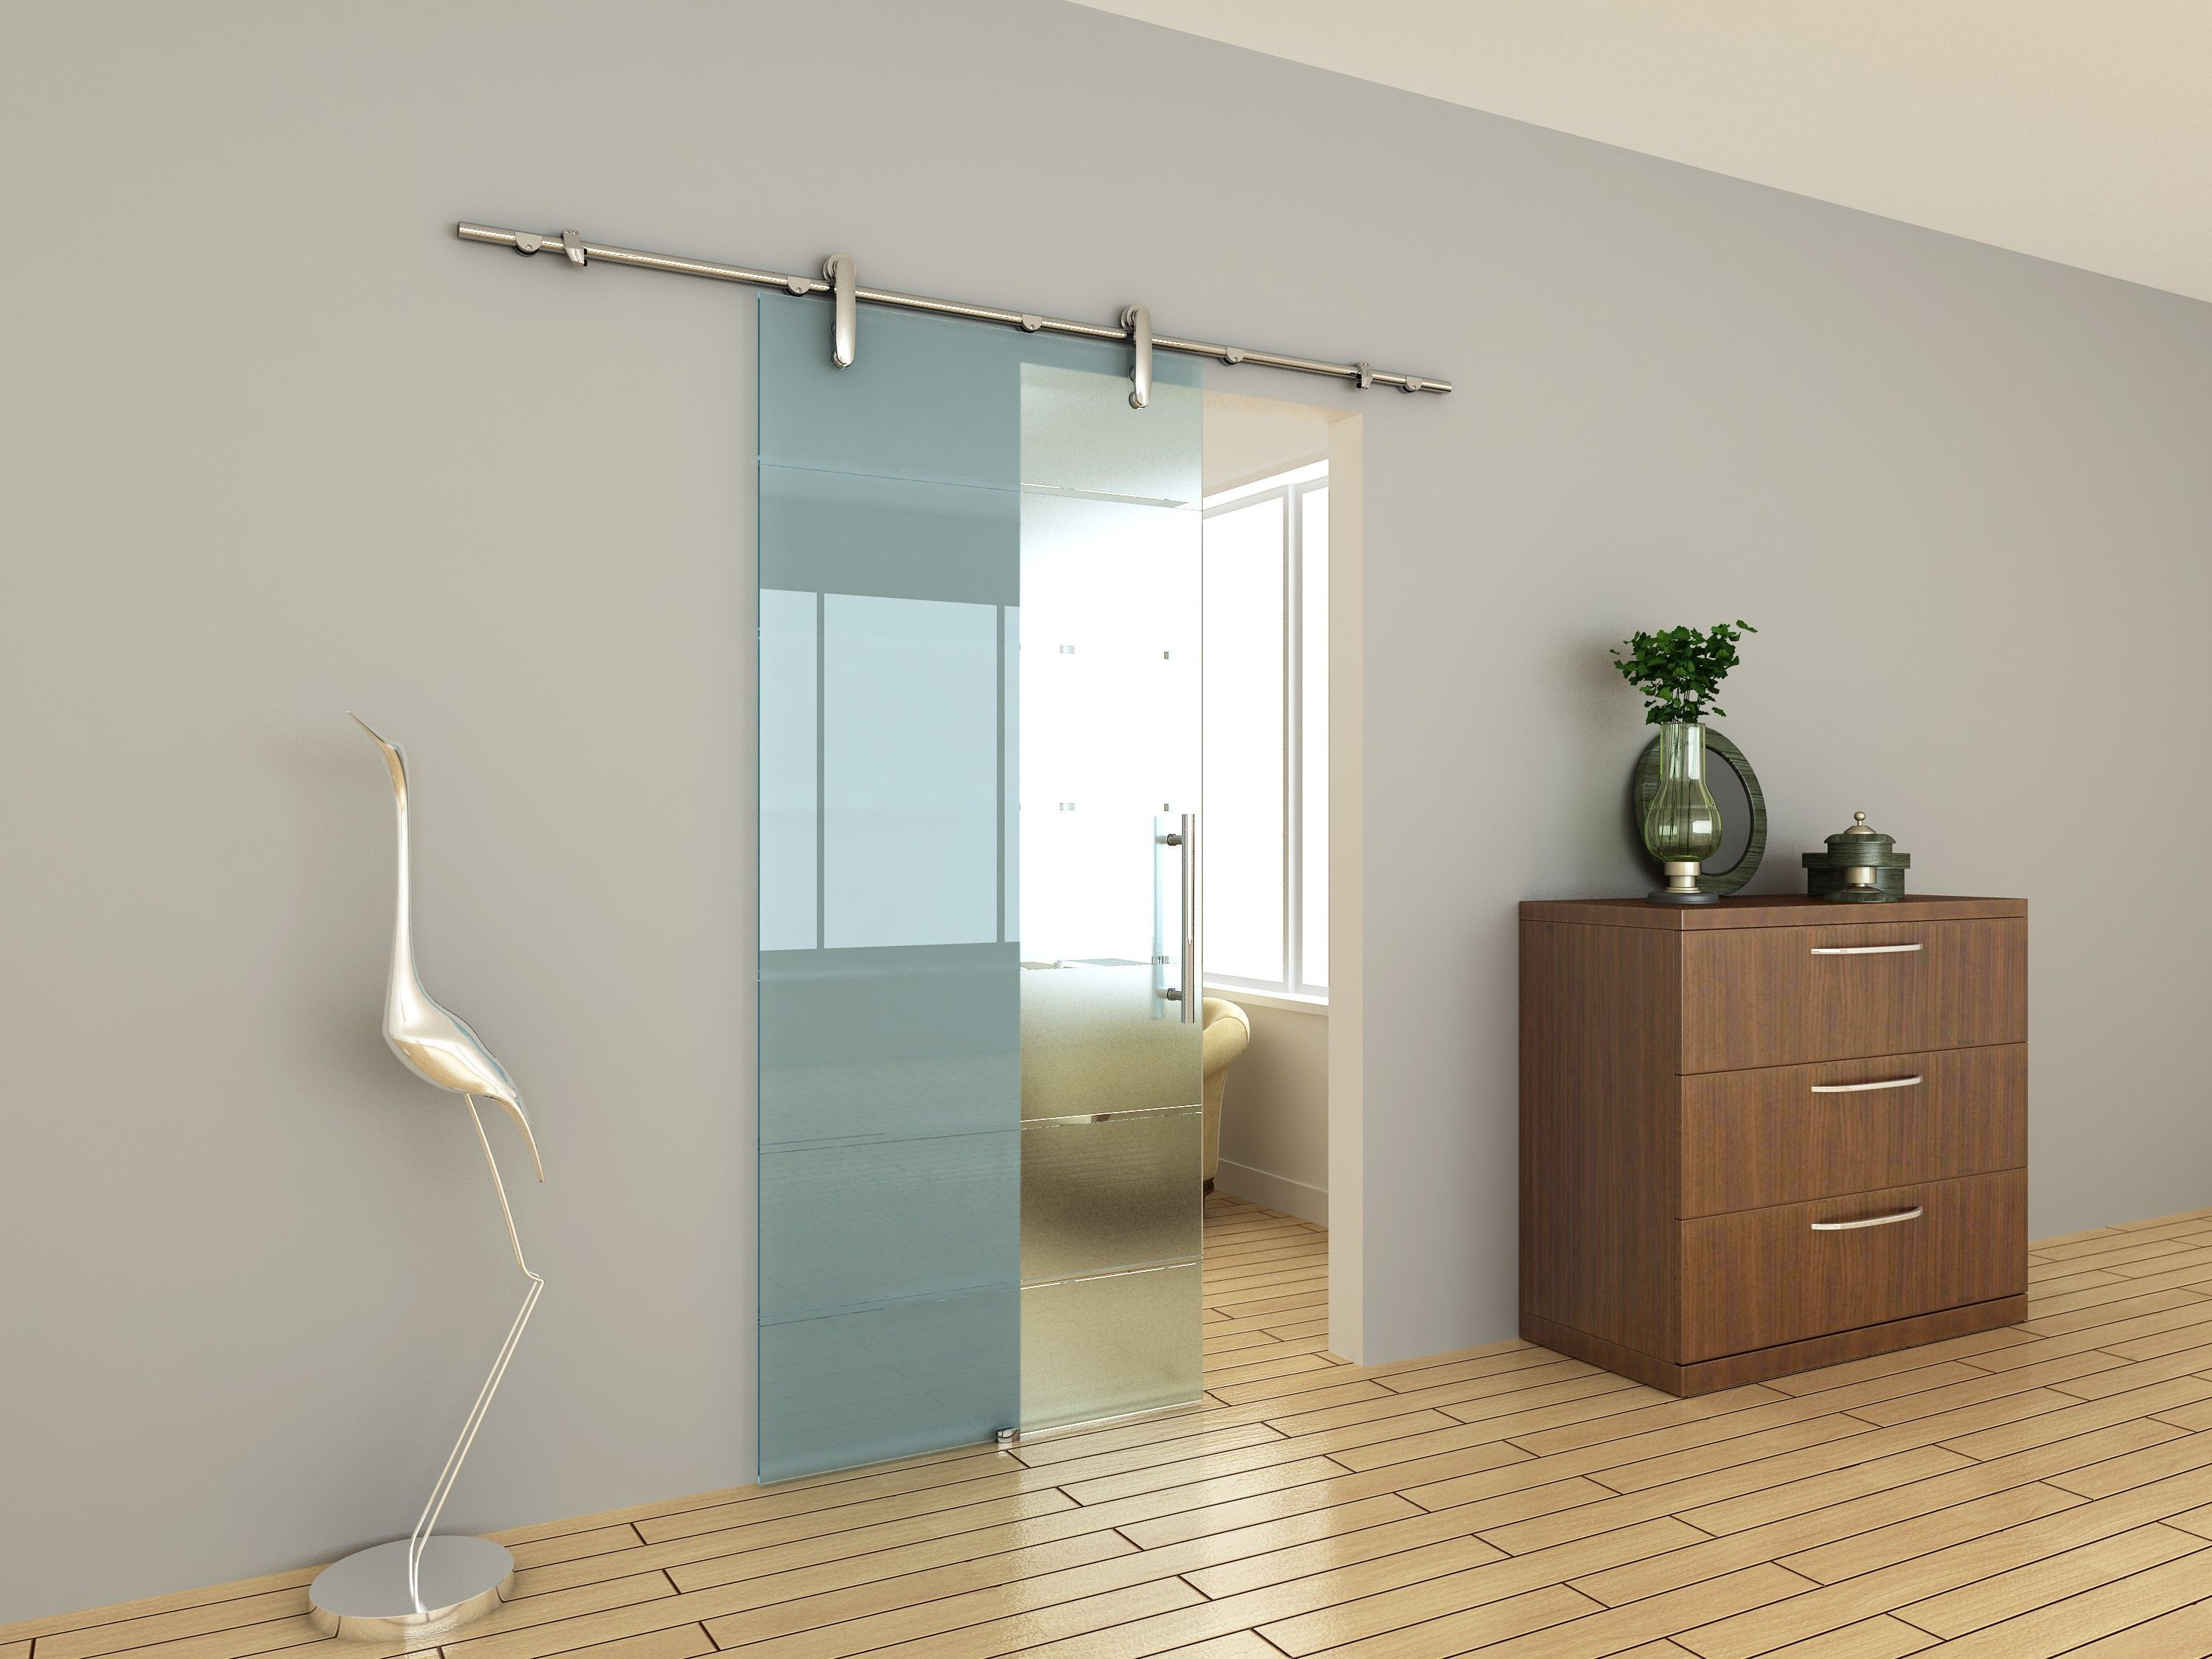 Best Sliding Door Designs That You Can Have In Your Home With Images Sliding Bathroom Doors Sliding Doors Interior Glass Doors Interior